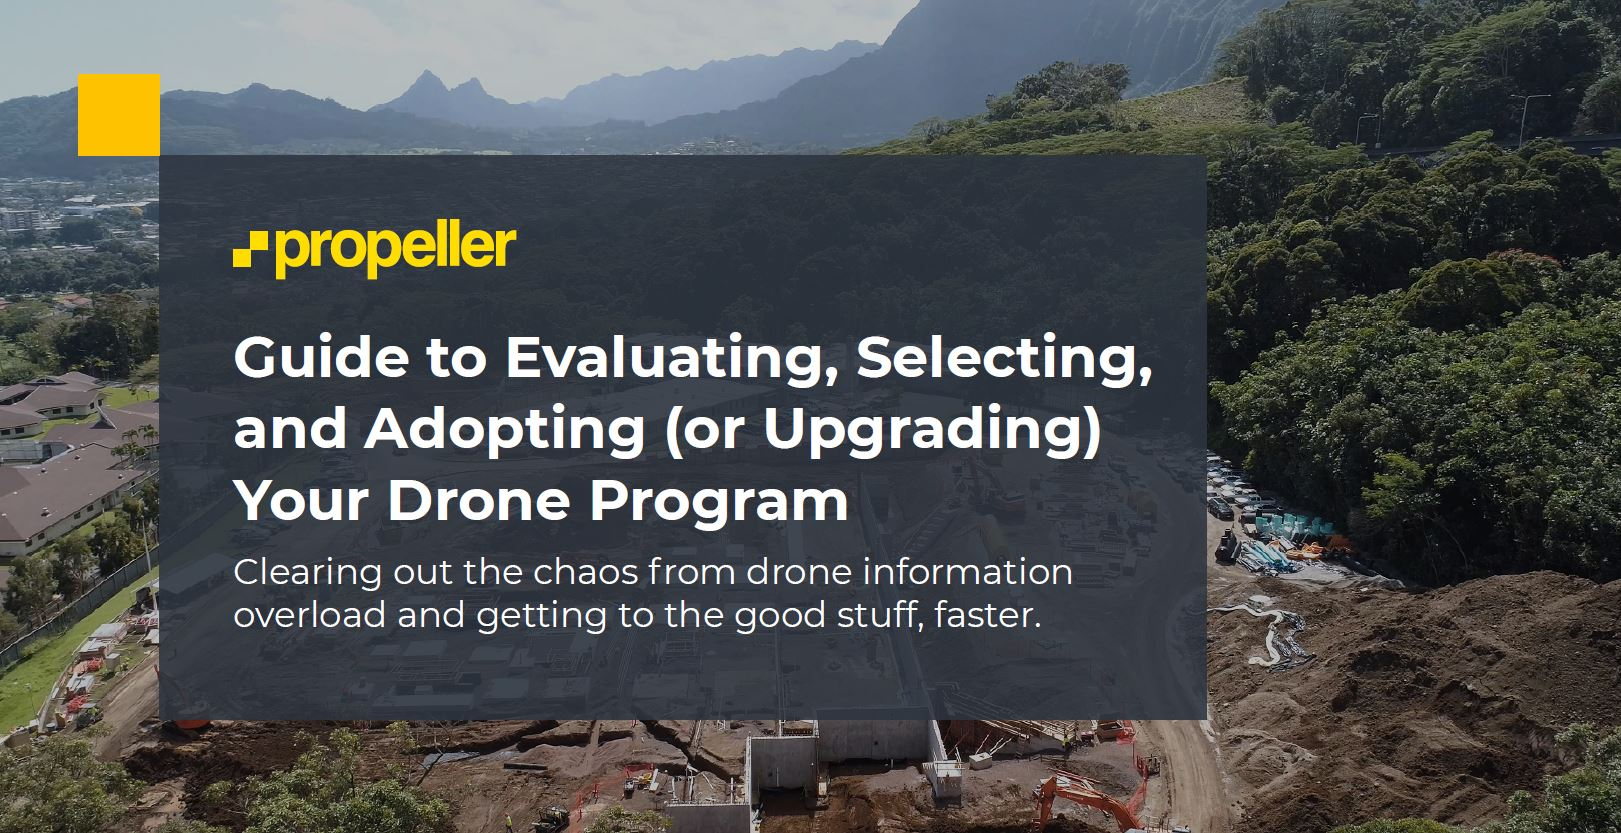 Guide to Eval Drone Program Cover-1